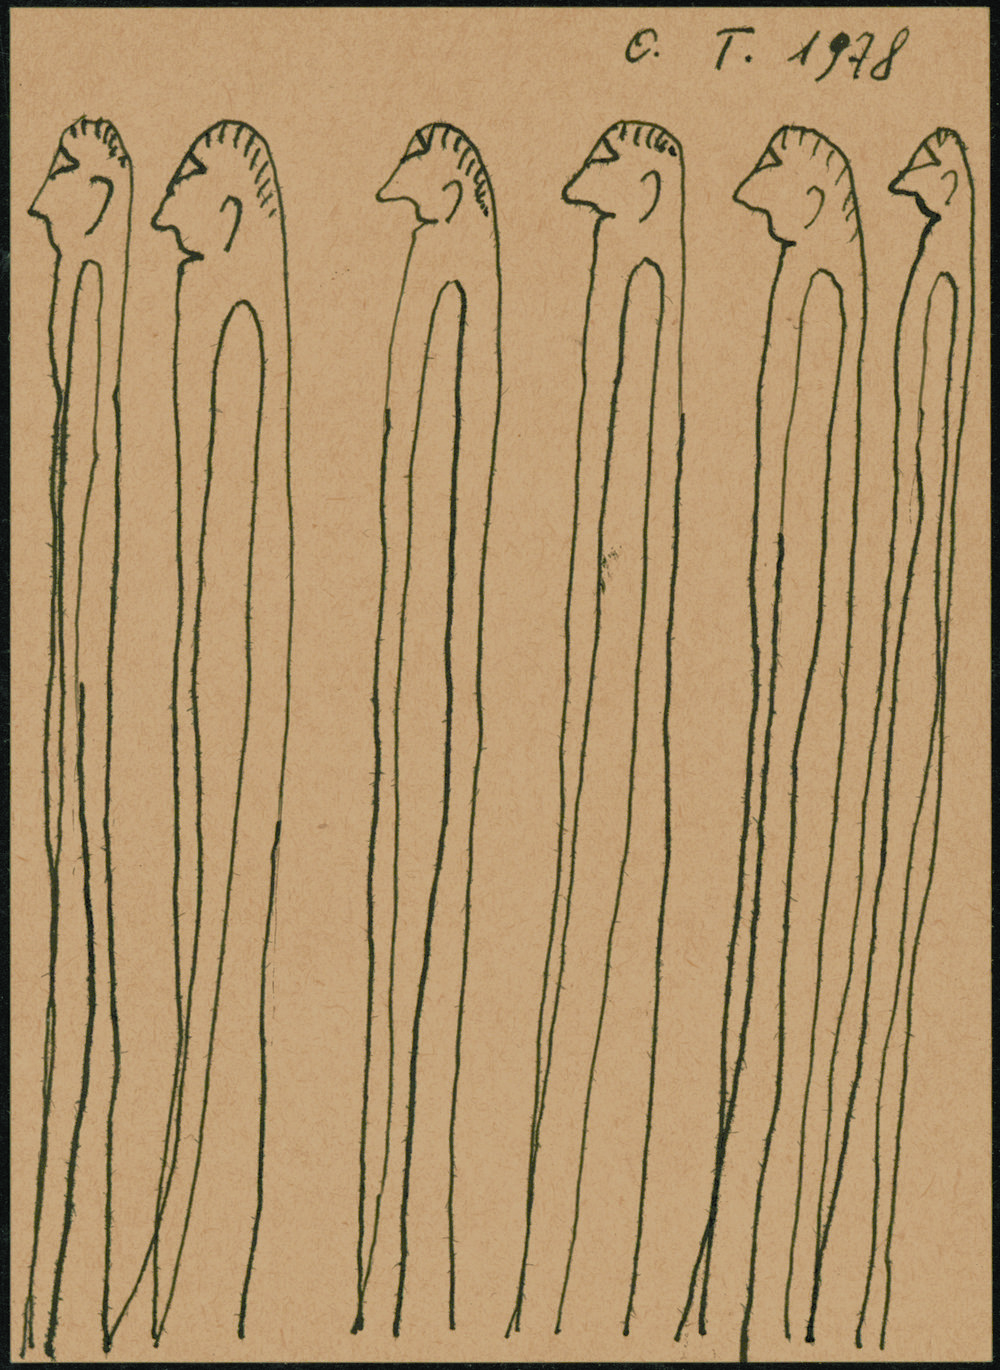 Oswald Tschirtner (Austrian, 1920-2007).  Six standing figures facing left , 1978. Ink on paper, 5 ¾ x 4 1/8 in. Intuit: The Center for Intuitive and Outsider Art, gift of John M. MacGregor in honor of Robert A. Roth, 2004.7.5